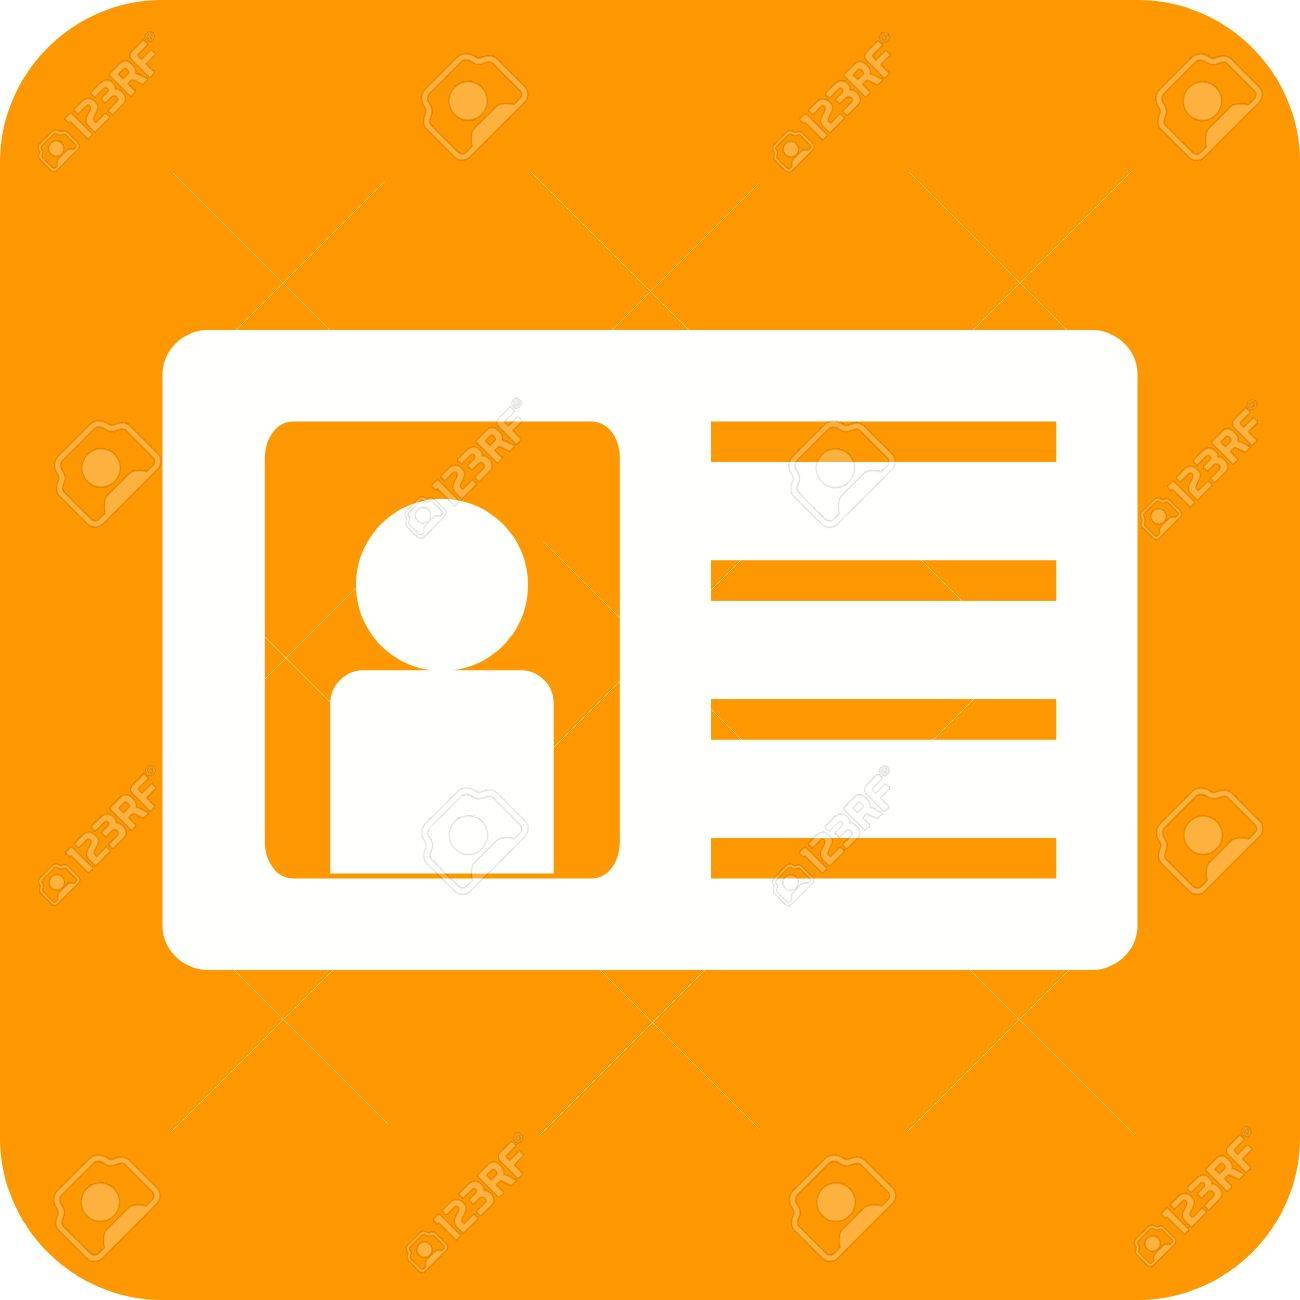 Identity Free Cliparts Vector Royalty Vectors Authorization 53097522 Used Be Image Icon Also Illustration And Image Card can Stock